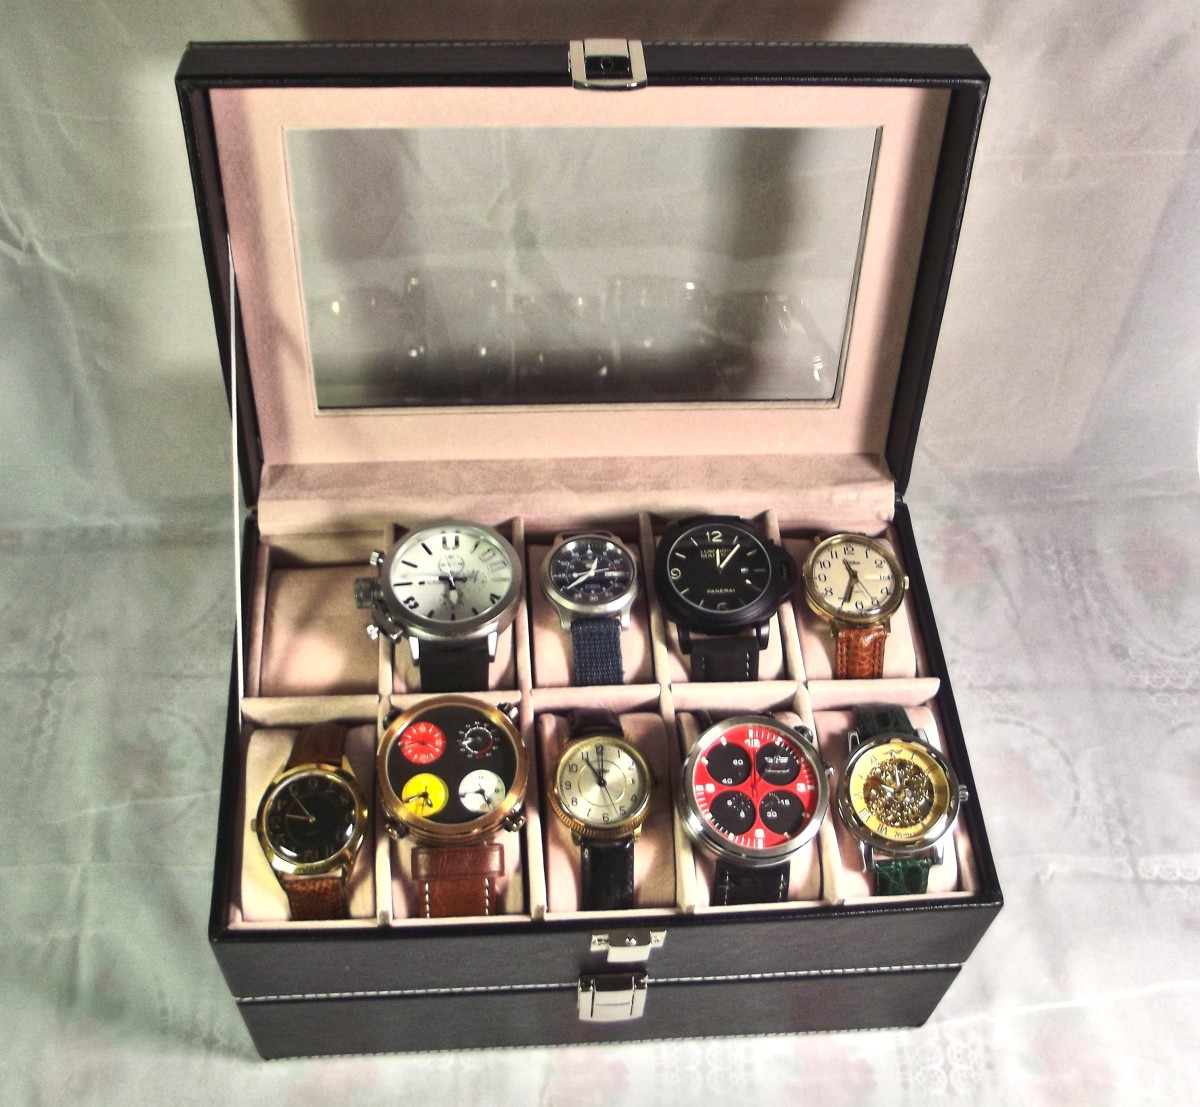 Watch box is mainly composed of faux leather reinforced with medium density fiberboard.